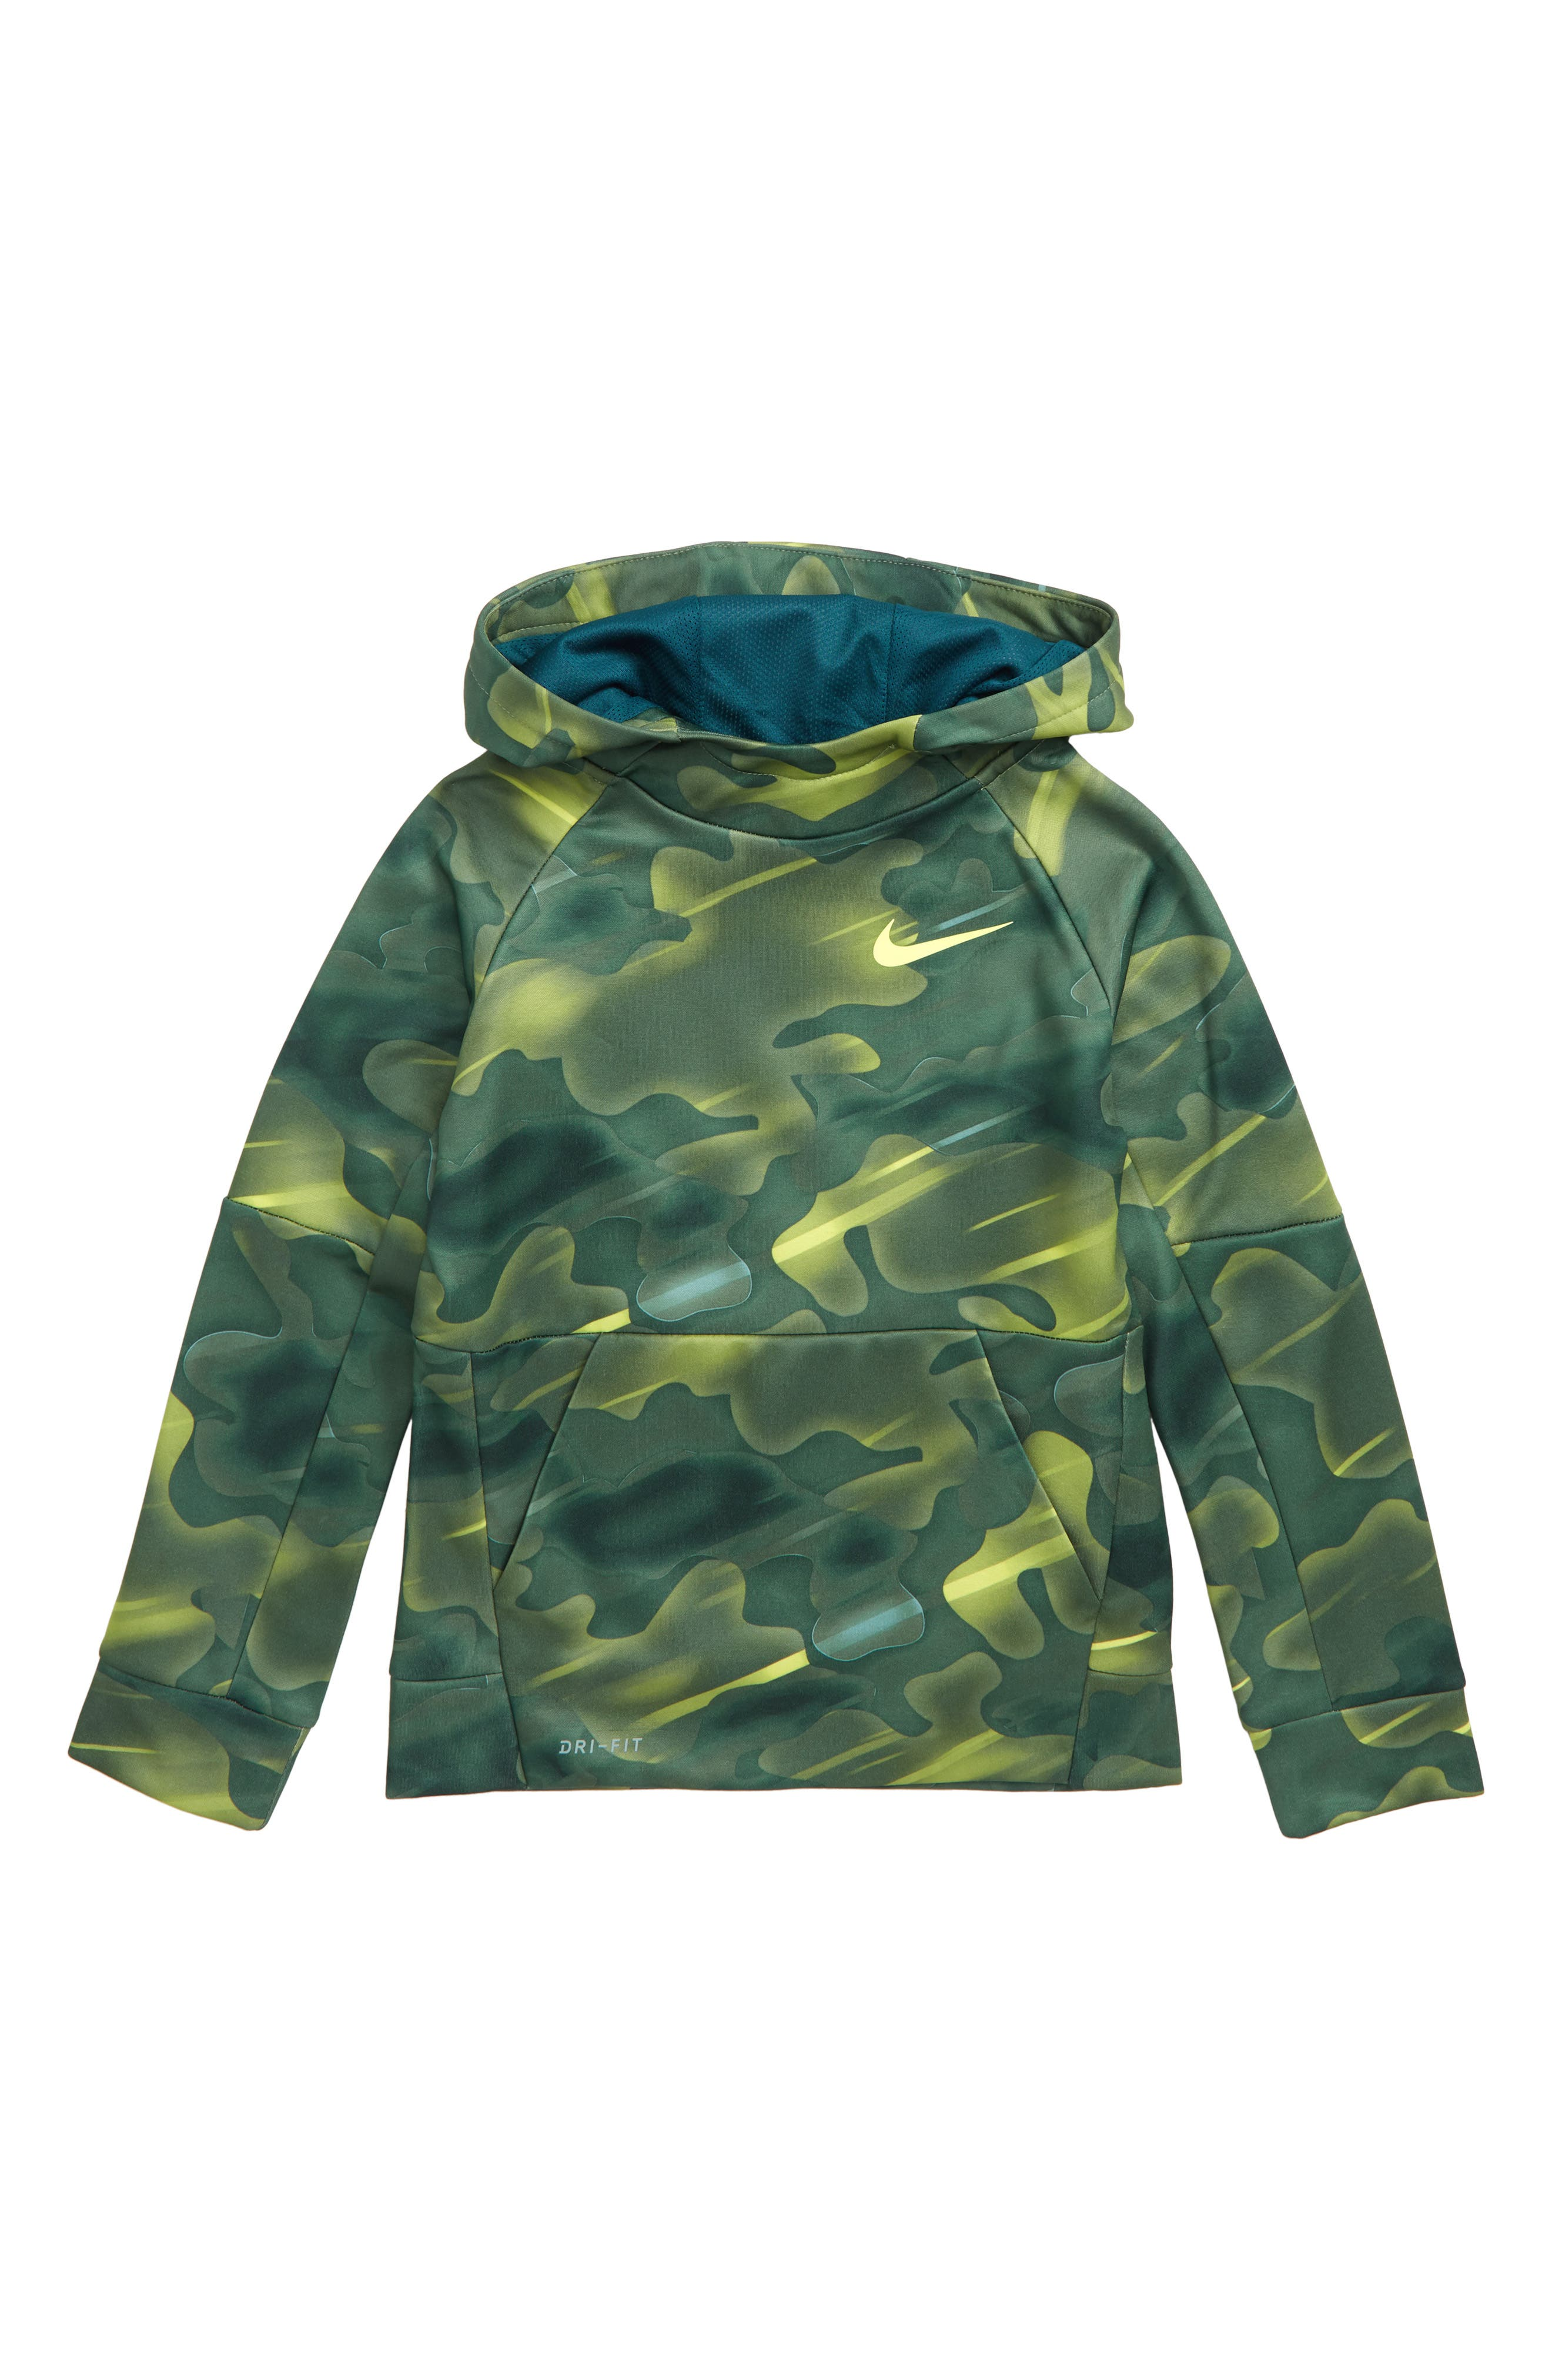 Therma Dry Hoodie,                             Main thumbnail 1, color,                             BLUE FORCE